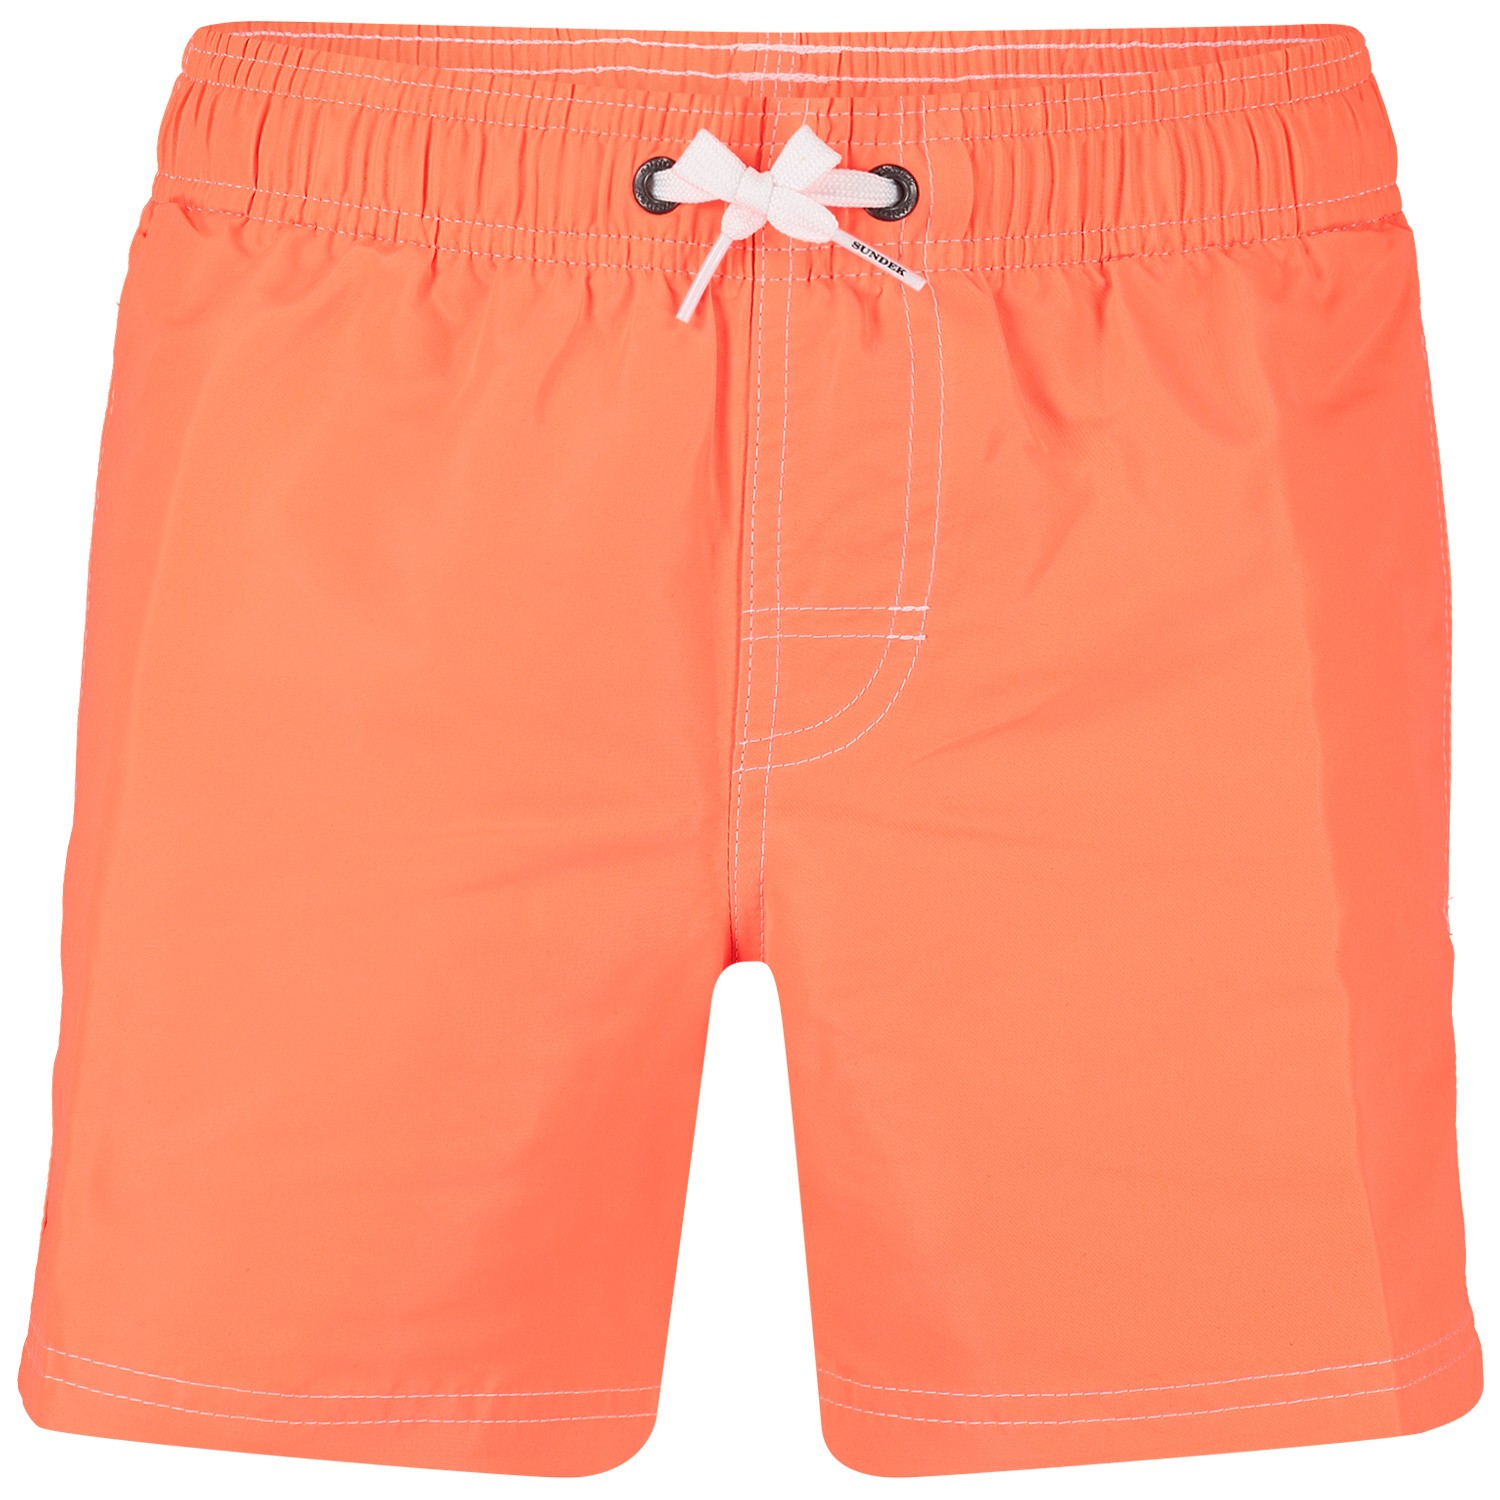 Picture of Sundeck B504BDTA100 kids swimwear fluoro orange